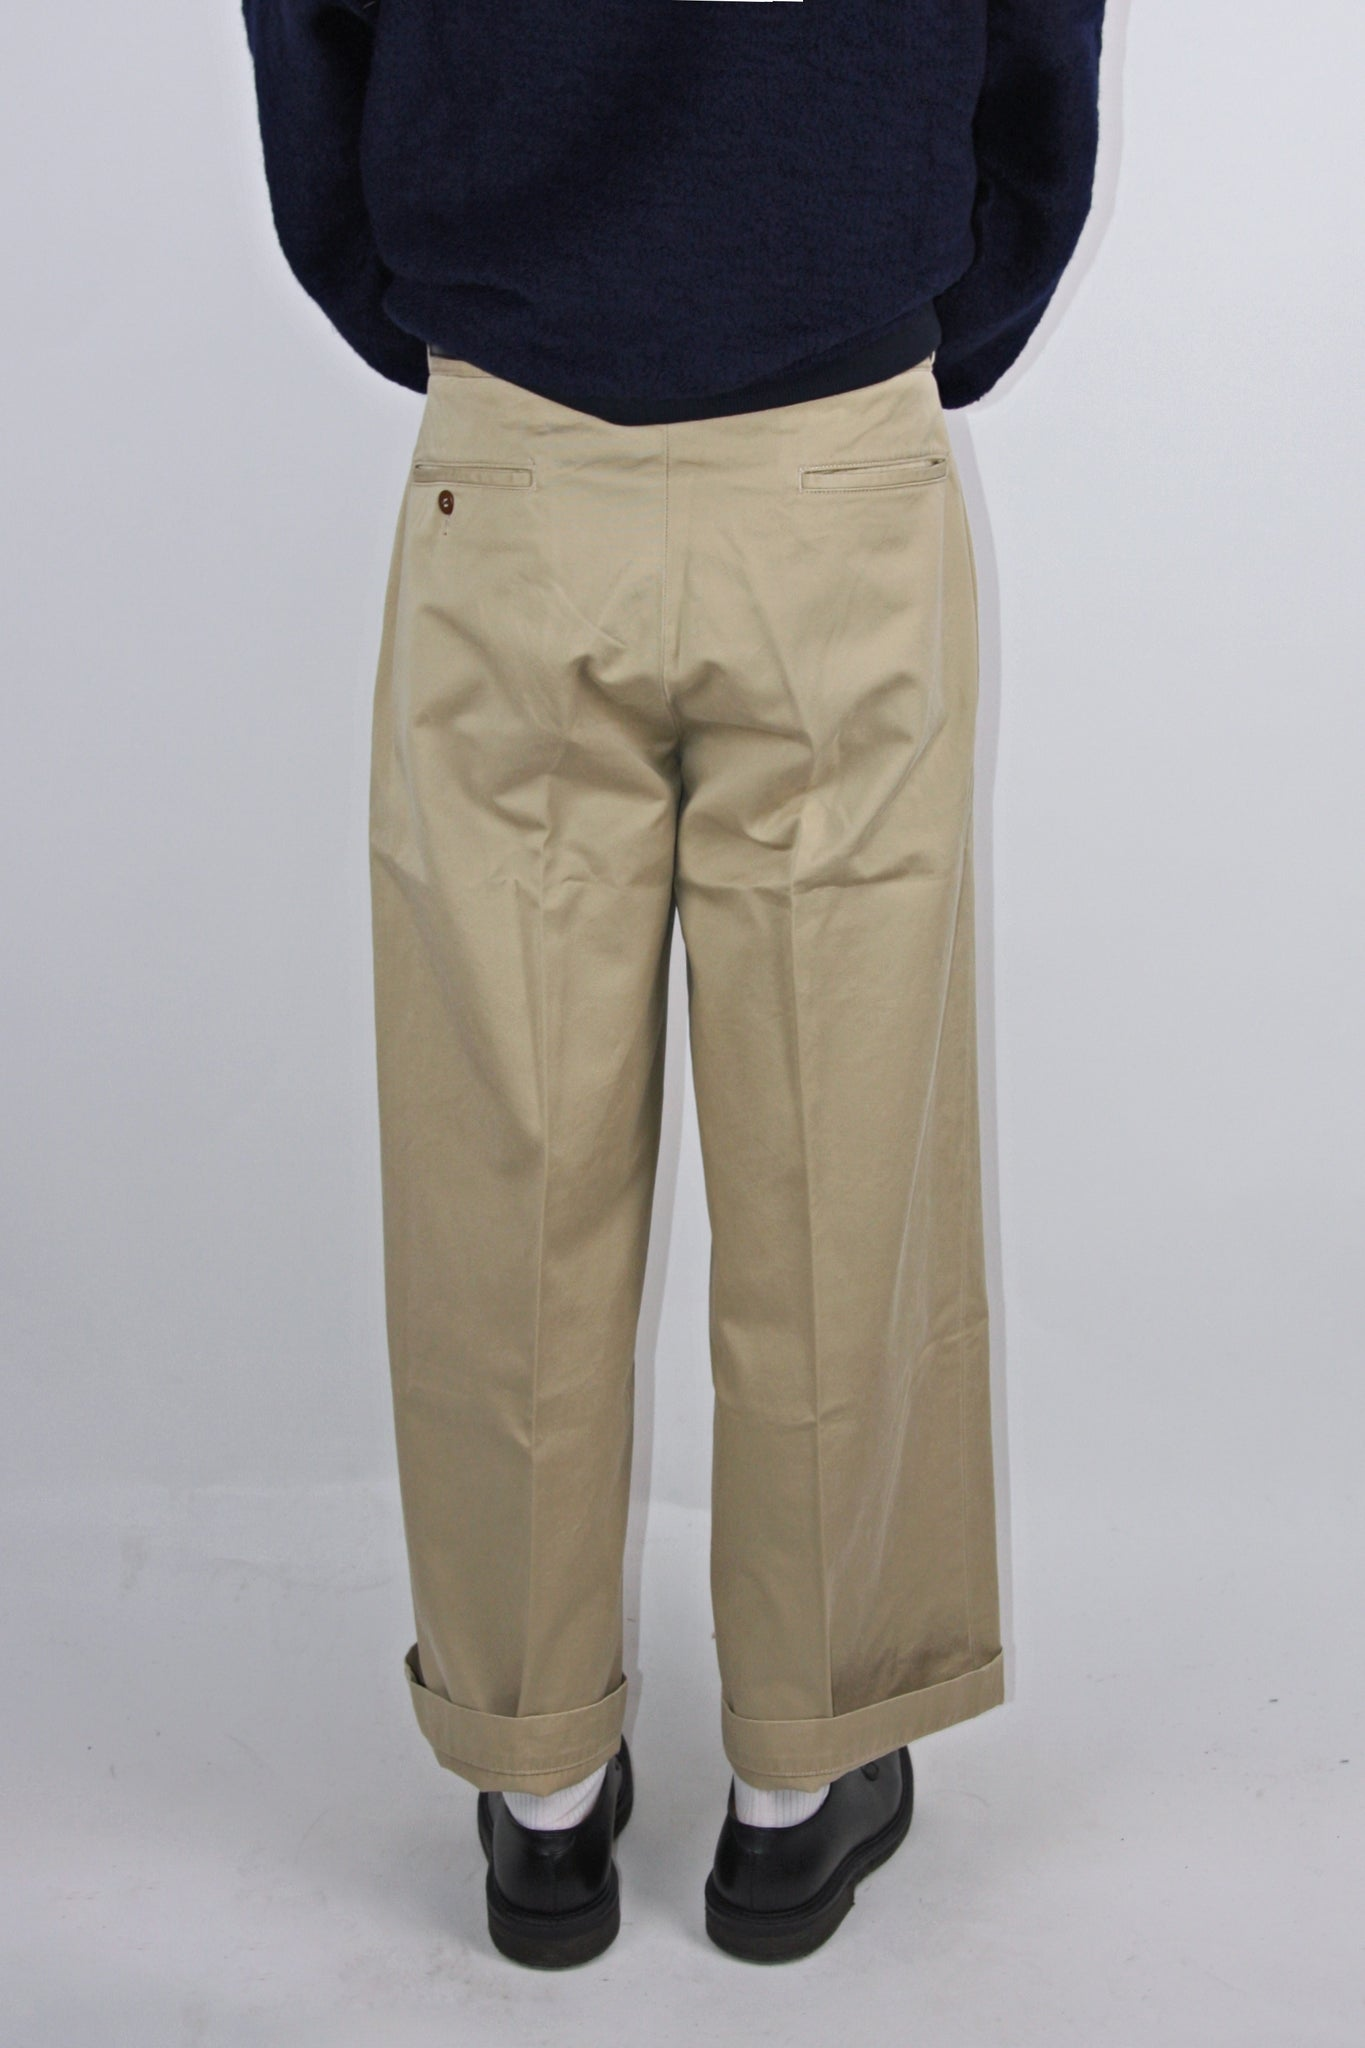 Chimala Men's Cotton Twill Beige Officer Chino Pant